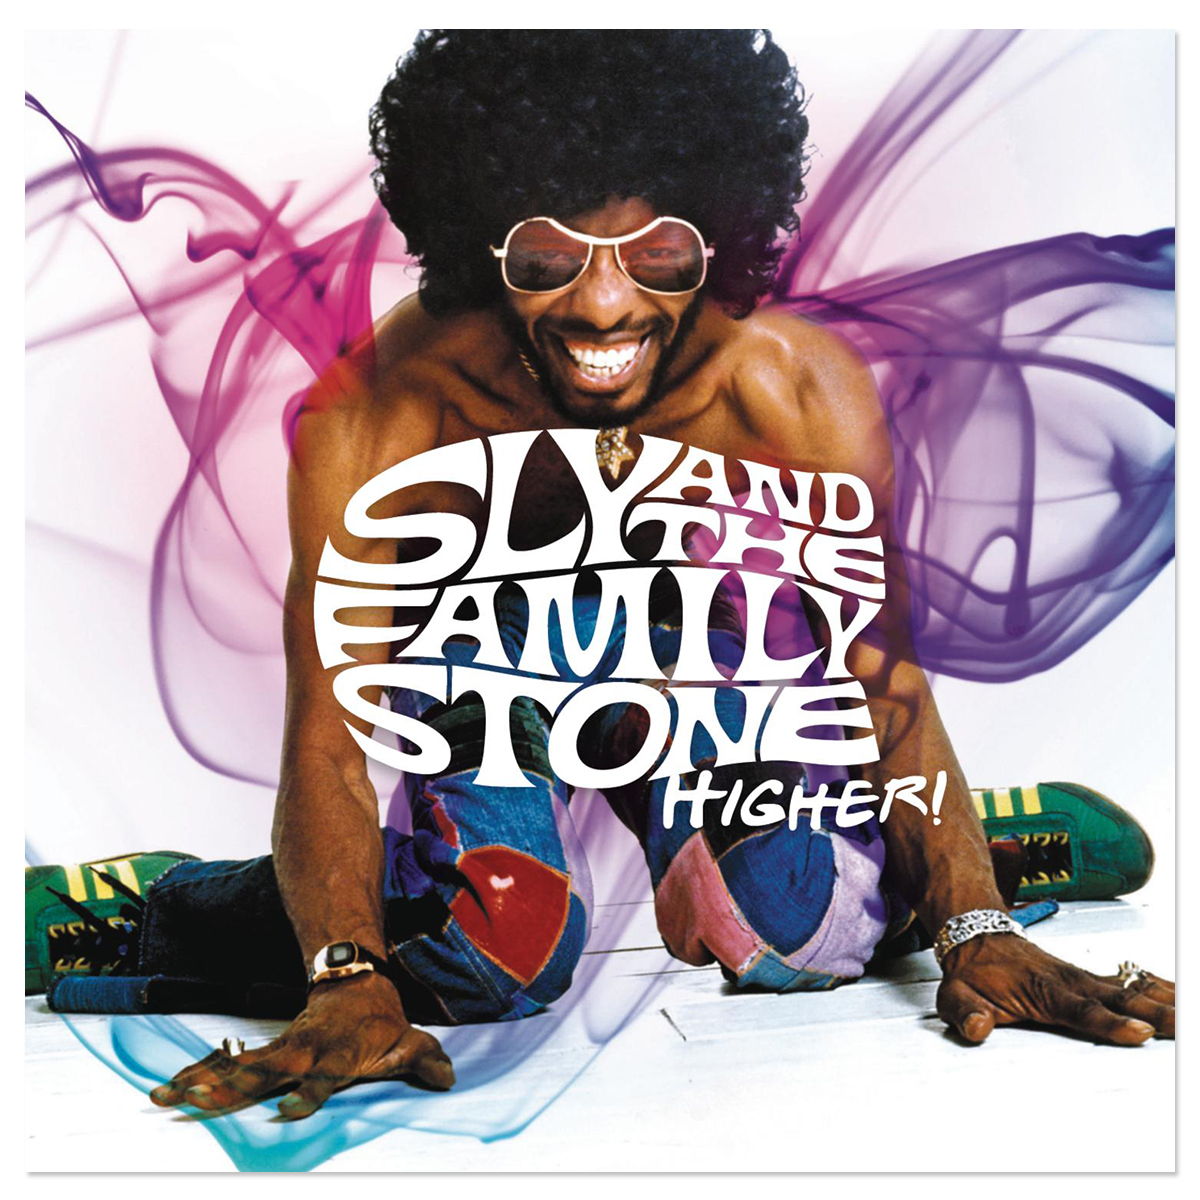 Sly & The Family Stone Higher! (Highlights) CD